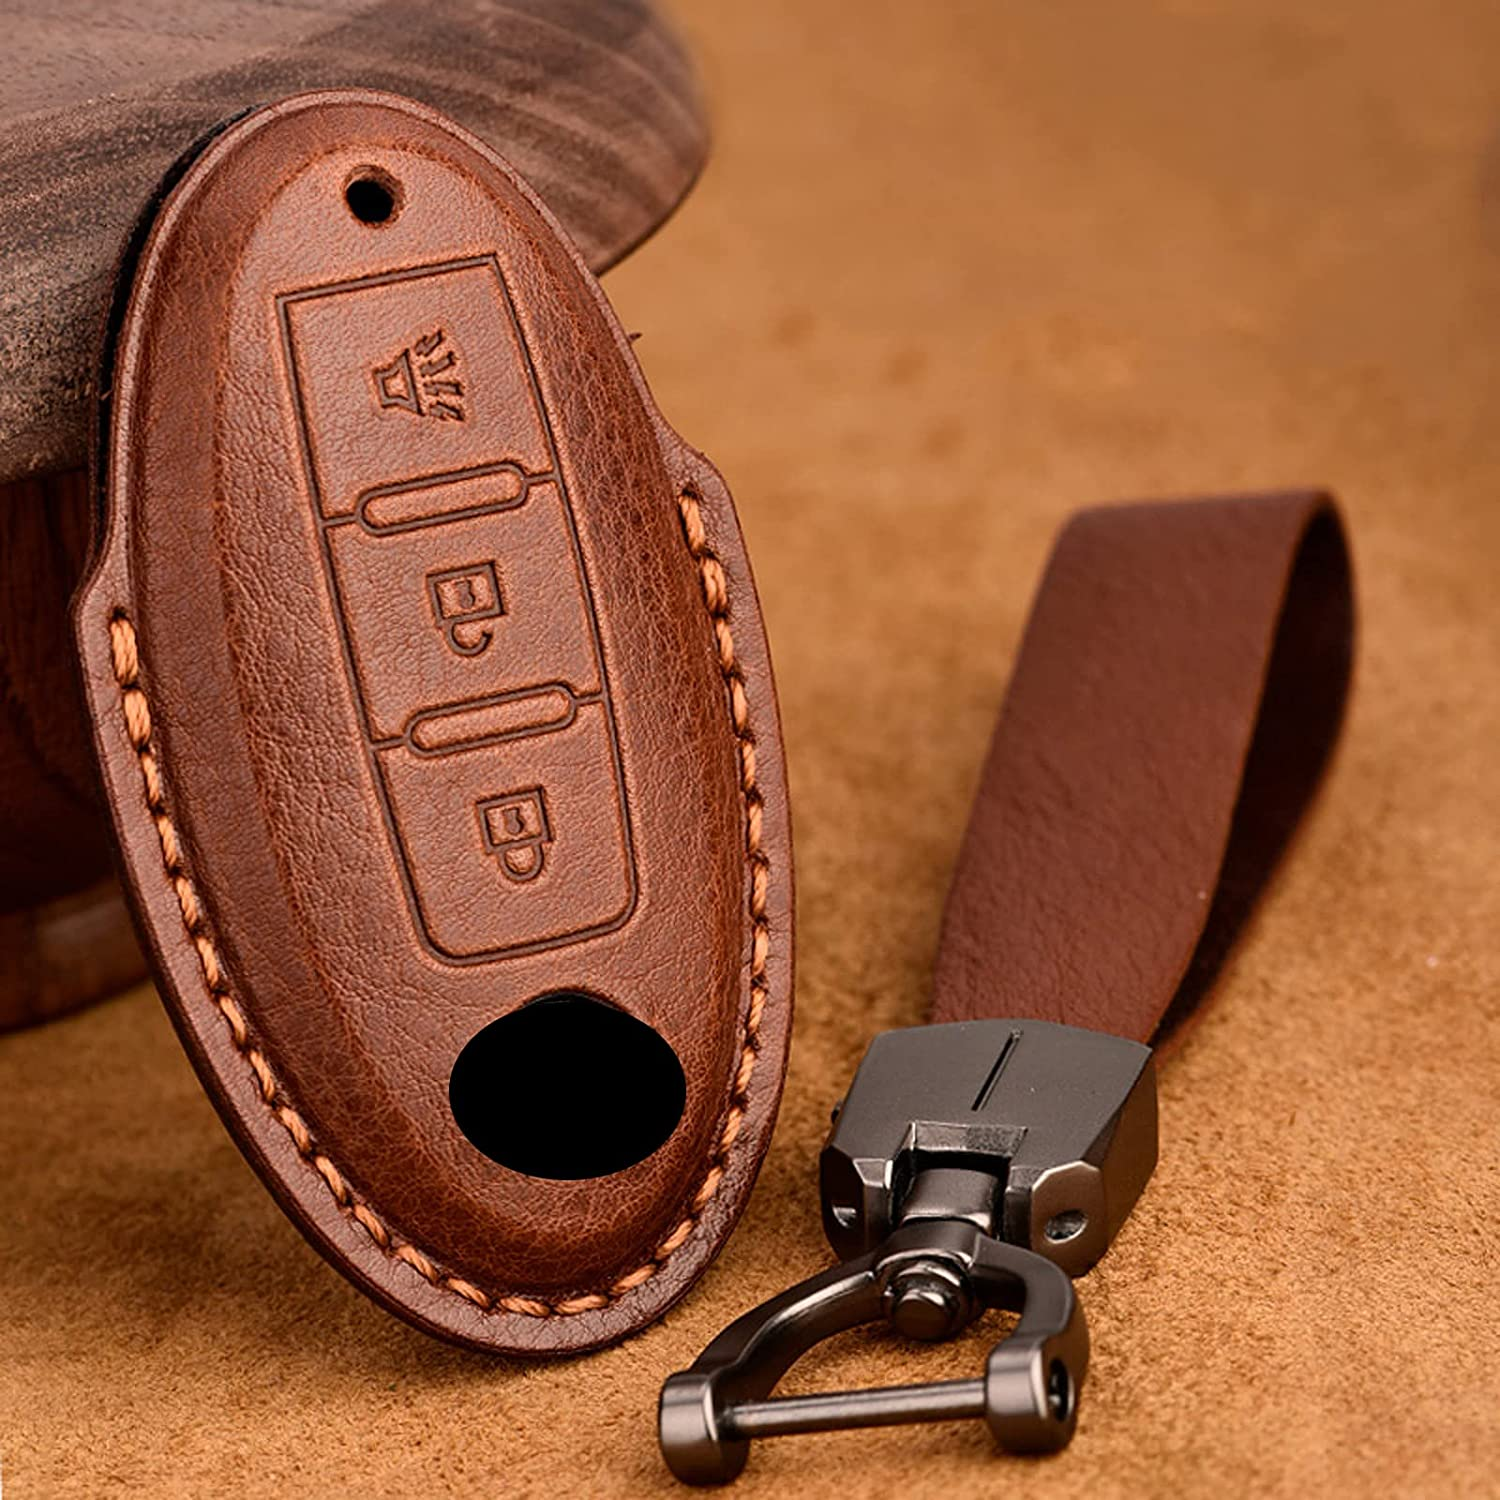 NUIOsdz Leather Smart Key Fob Cover J10 Jacksonville Mall J Fit for New sales Qashqai Nissan